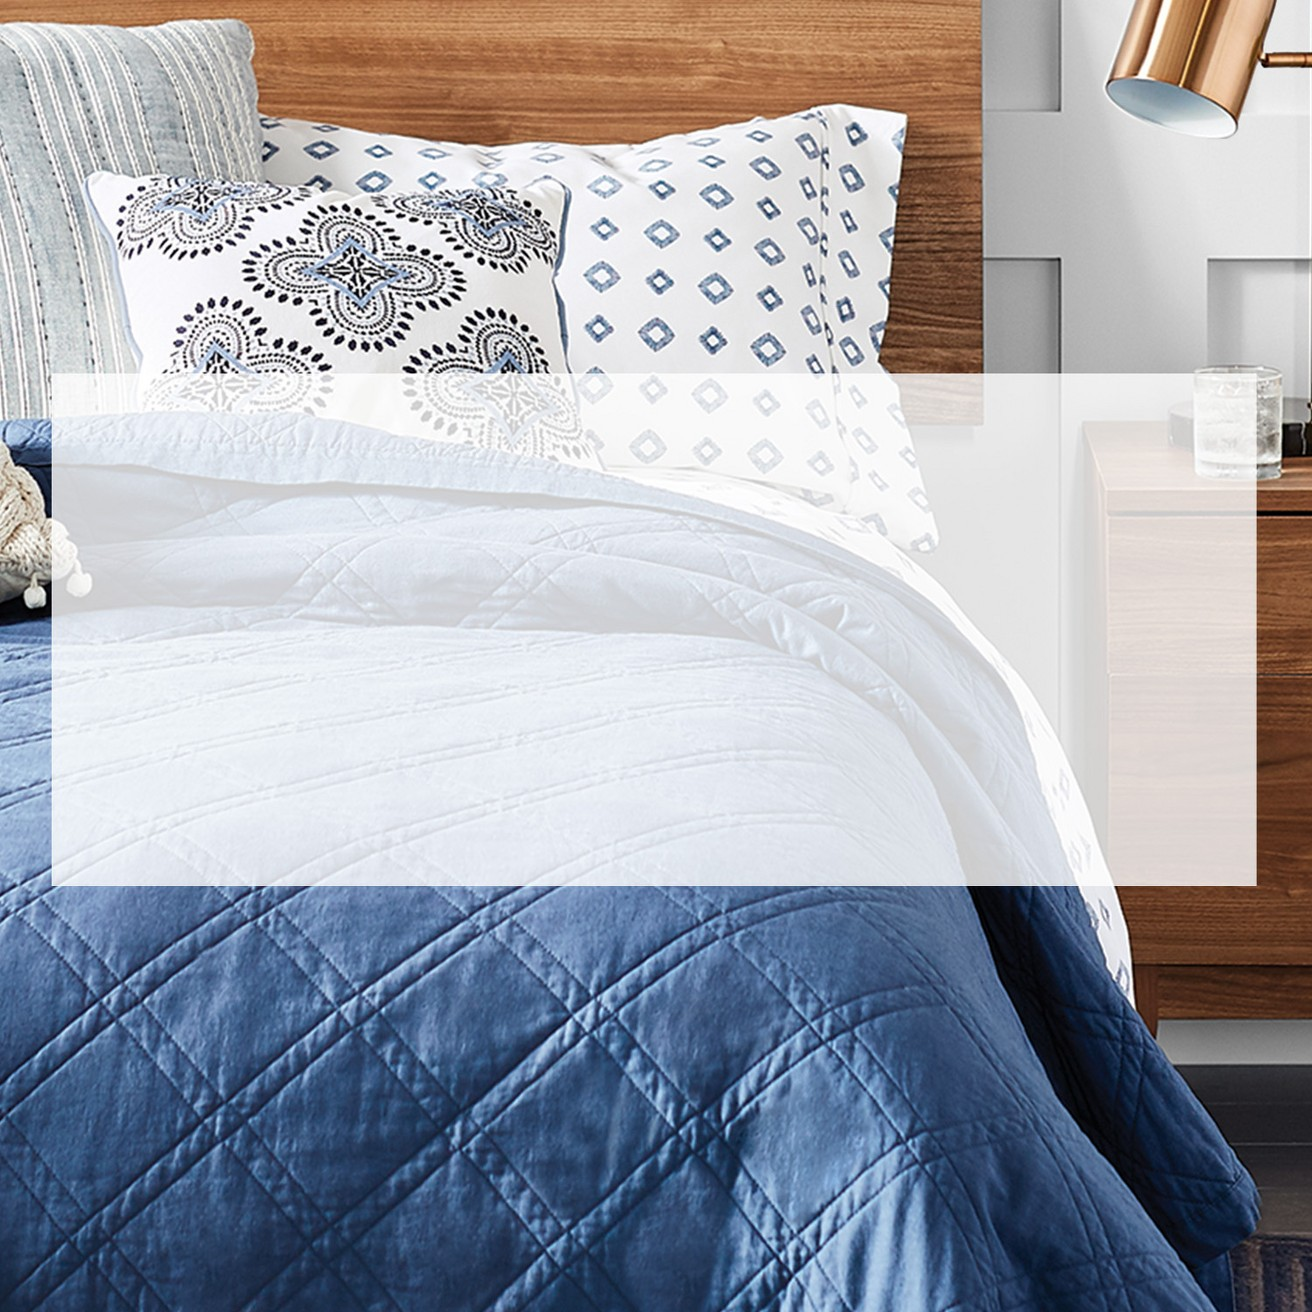 Bedding style coupons